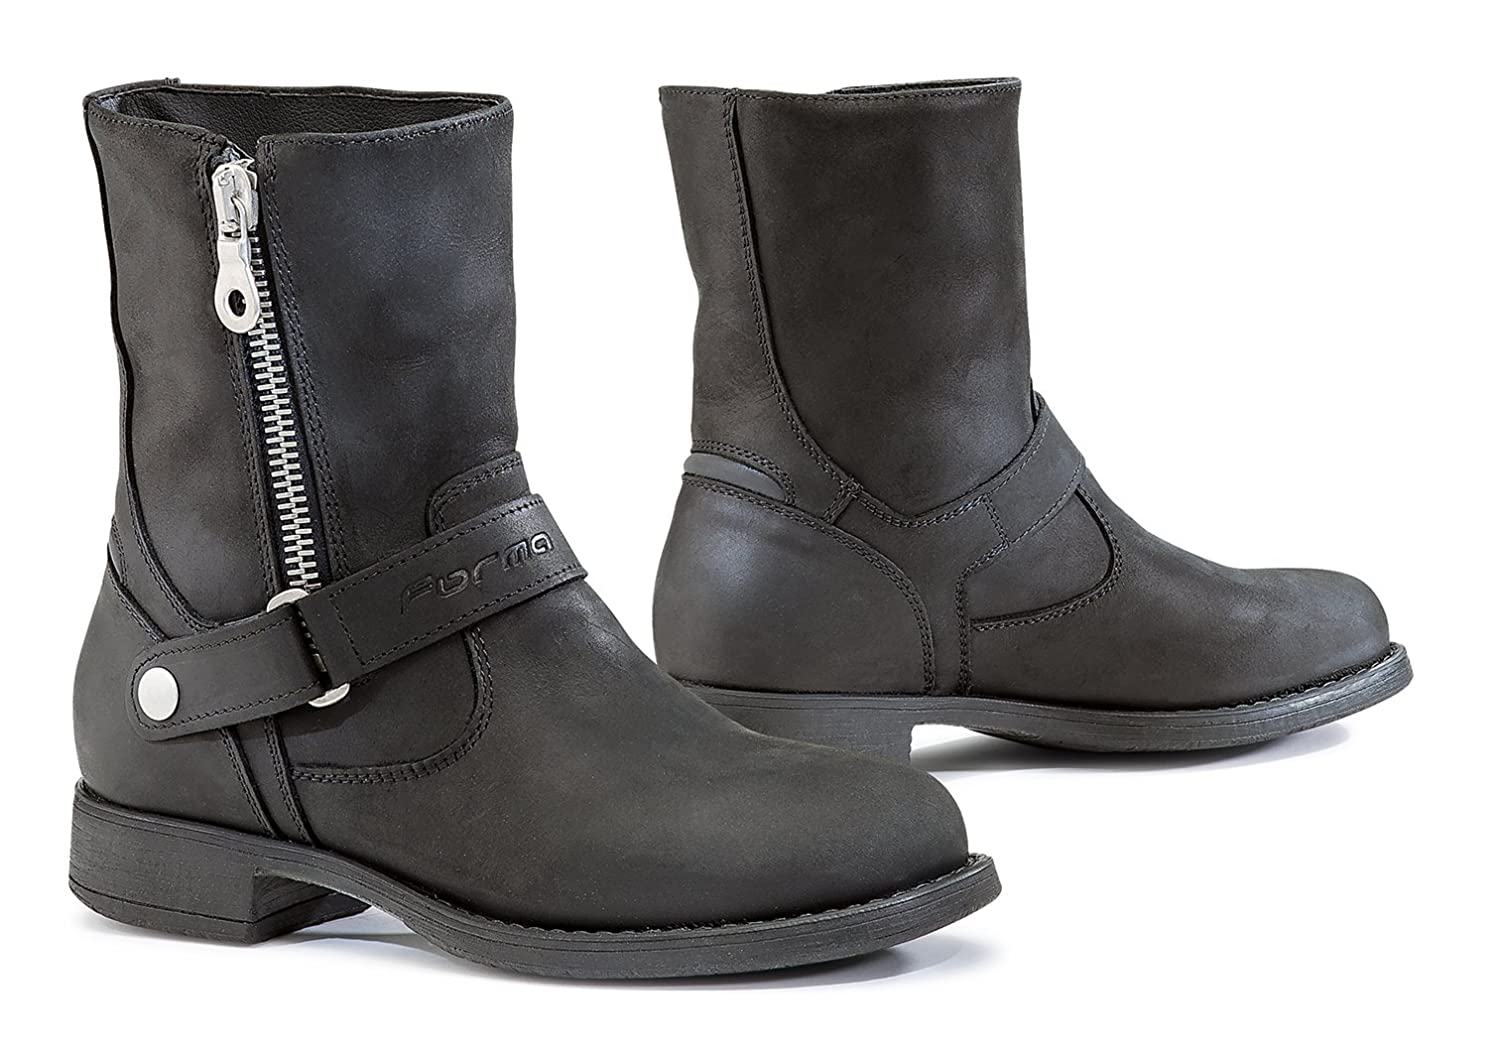 FORMA Motorcycle Women Boots Eva WP CE Approved, Black, 38 Forma Boots FORMABOOTS FWEVABK38